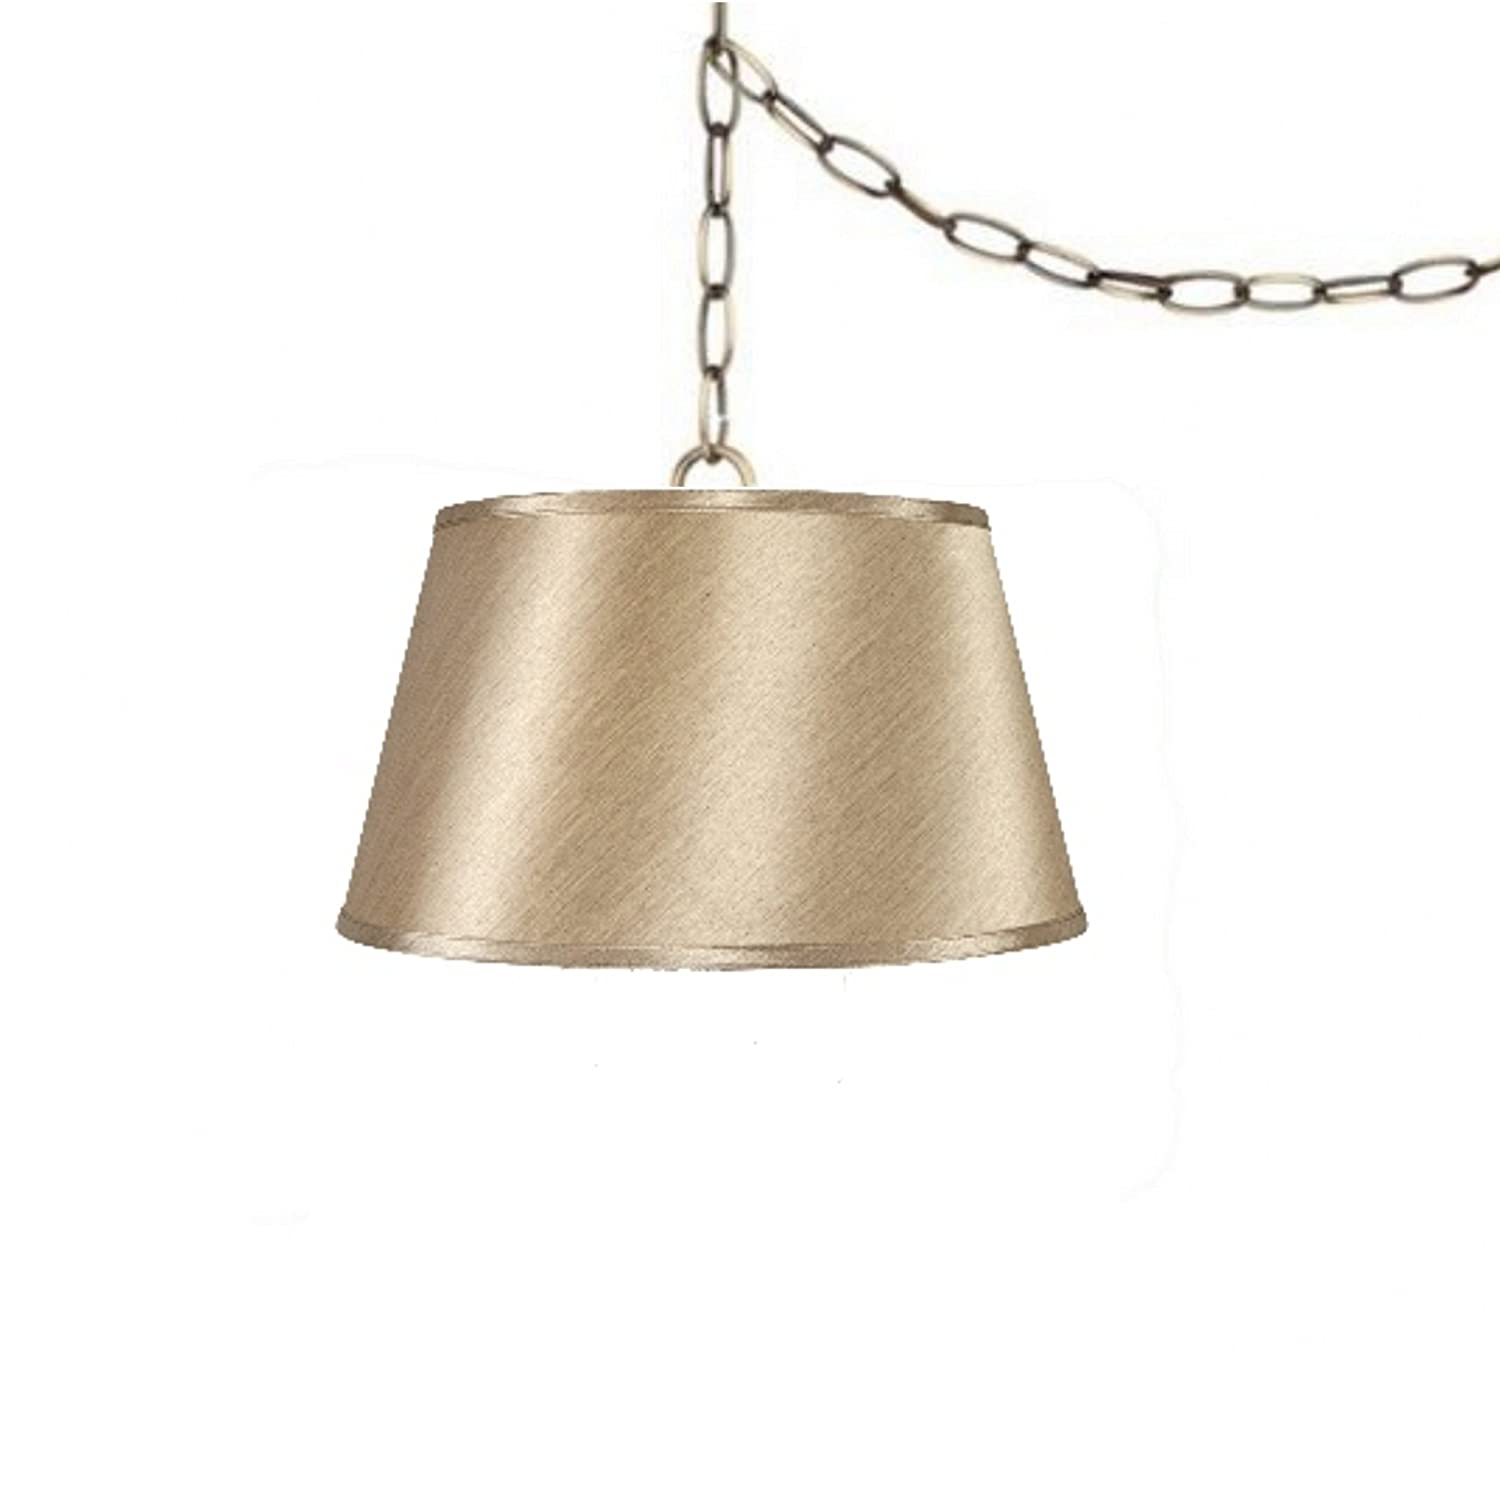 Upgradelights 19 Inch Tan Swag Lamp Lighting Fixture Hanging Plug